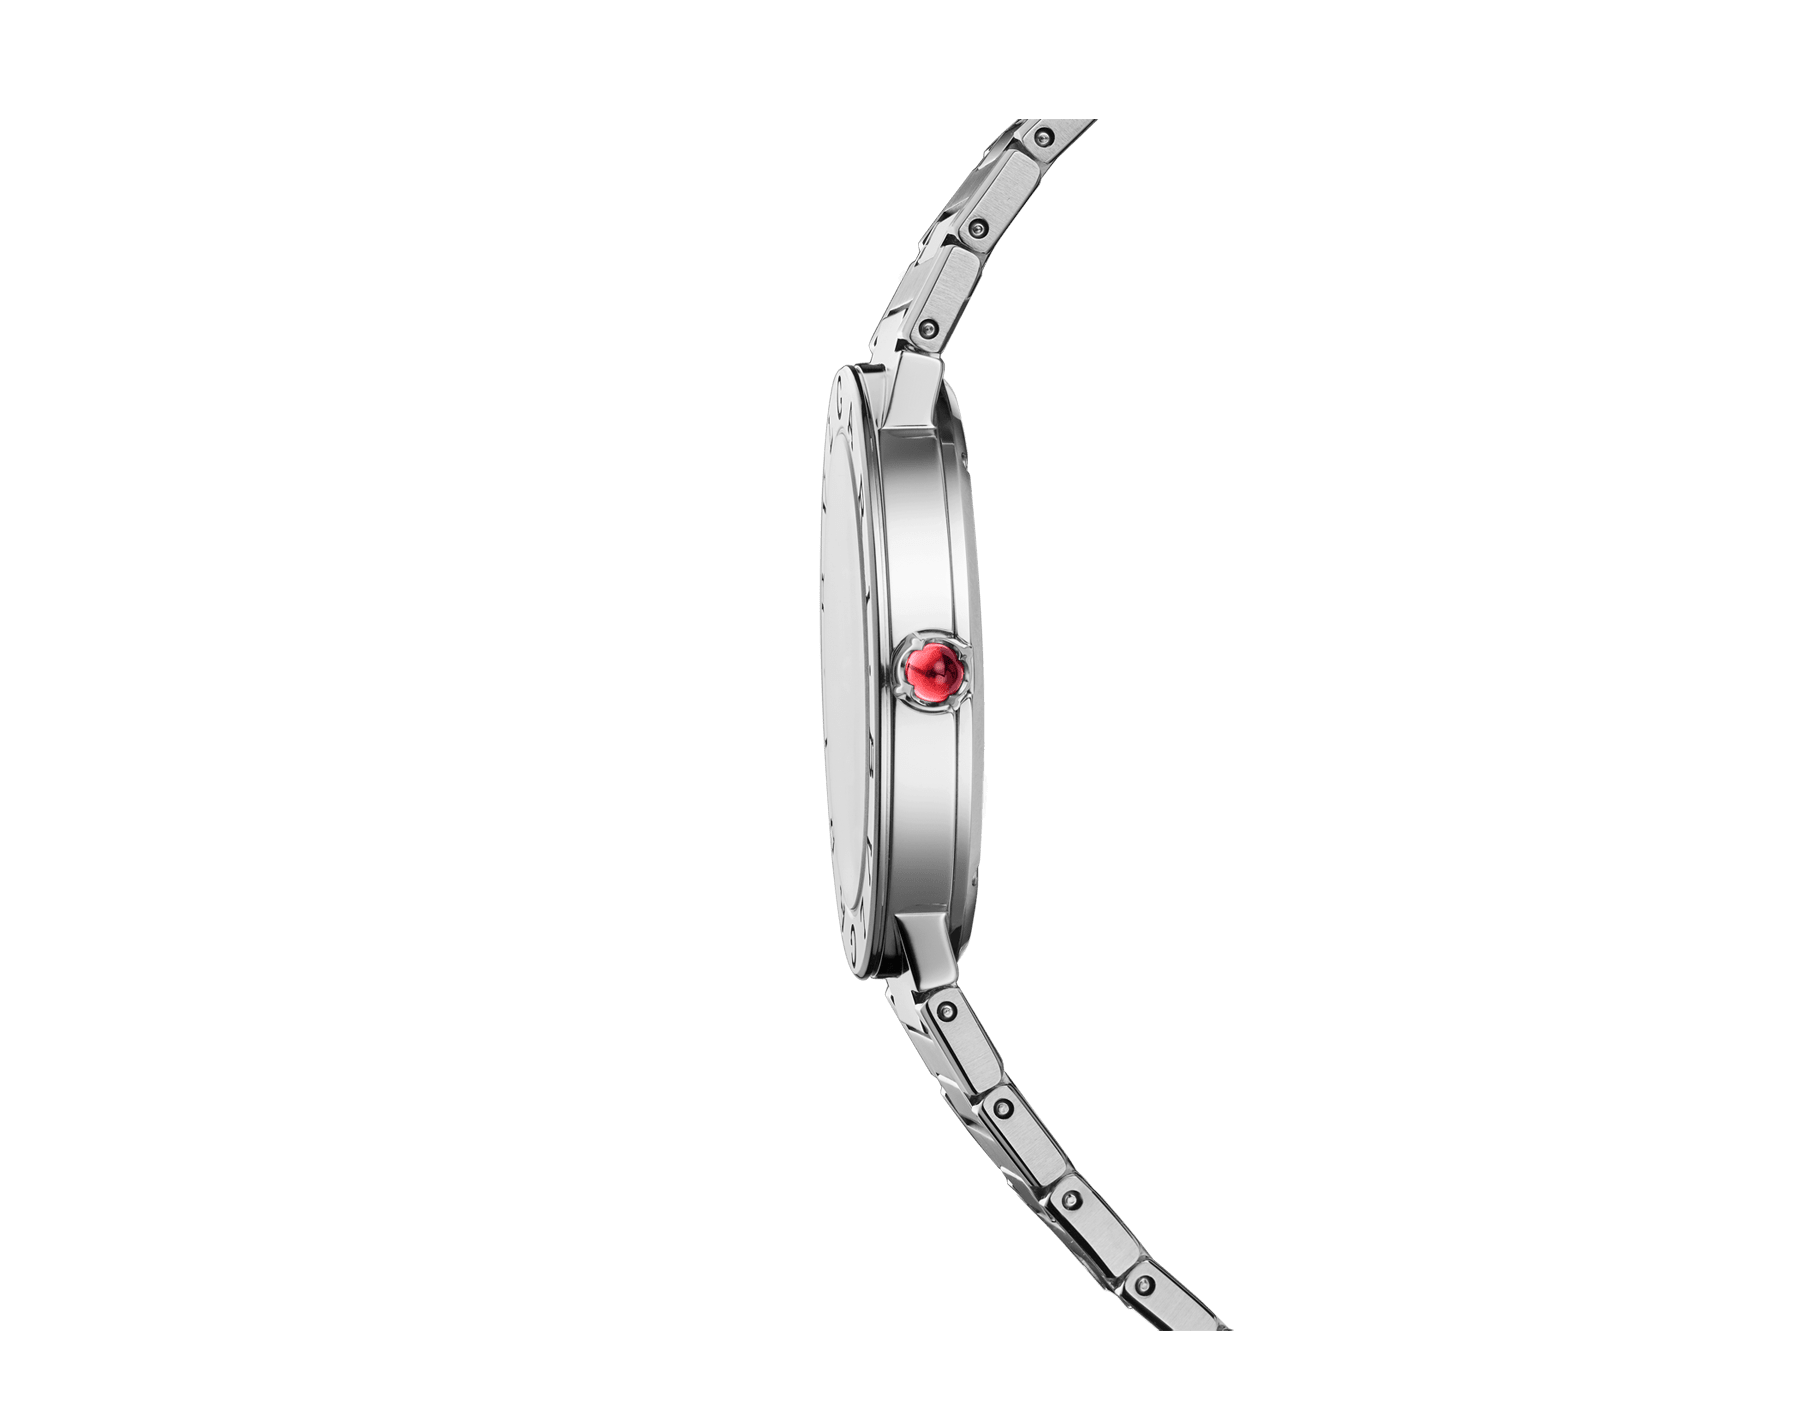 BVLGARI BVLGARI LADY watch in stainless steel case and bracelet, stainless steel bezel engraved with double logo, anthracite satiné soleil lacquered dial and diamond indexes 102923 image 2